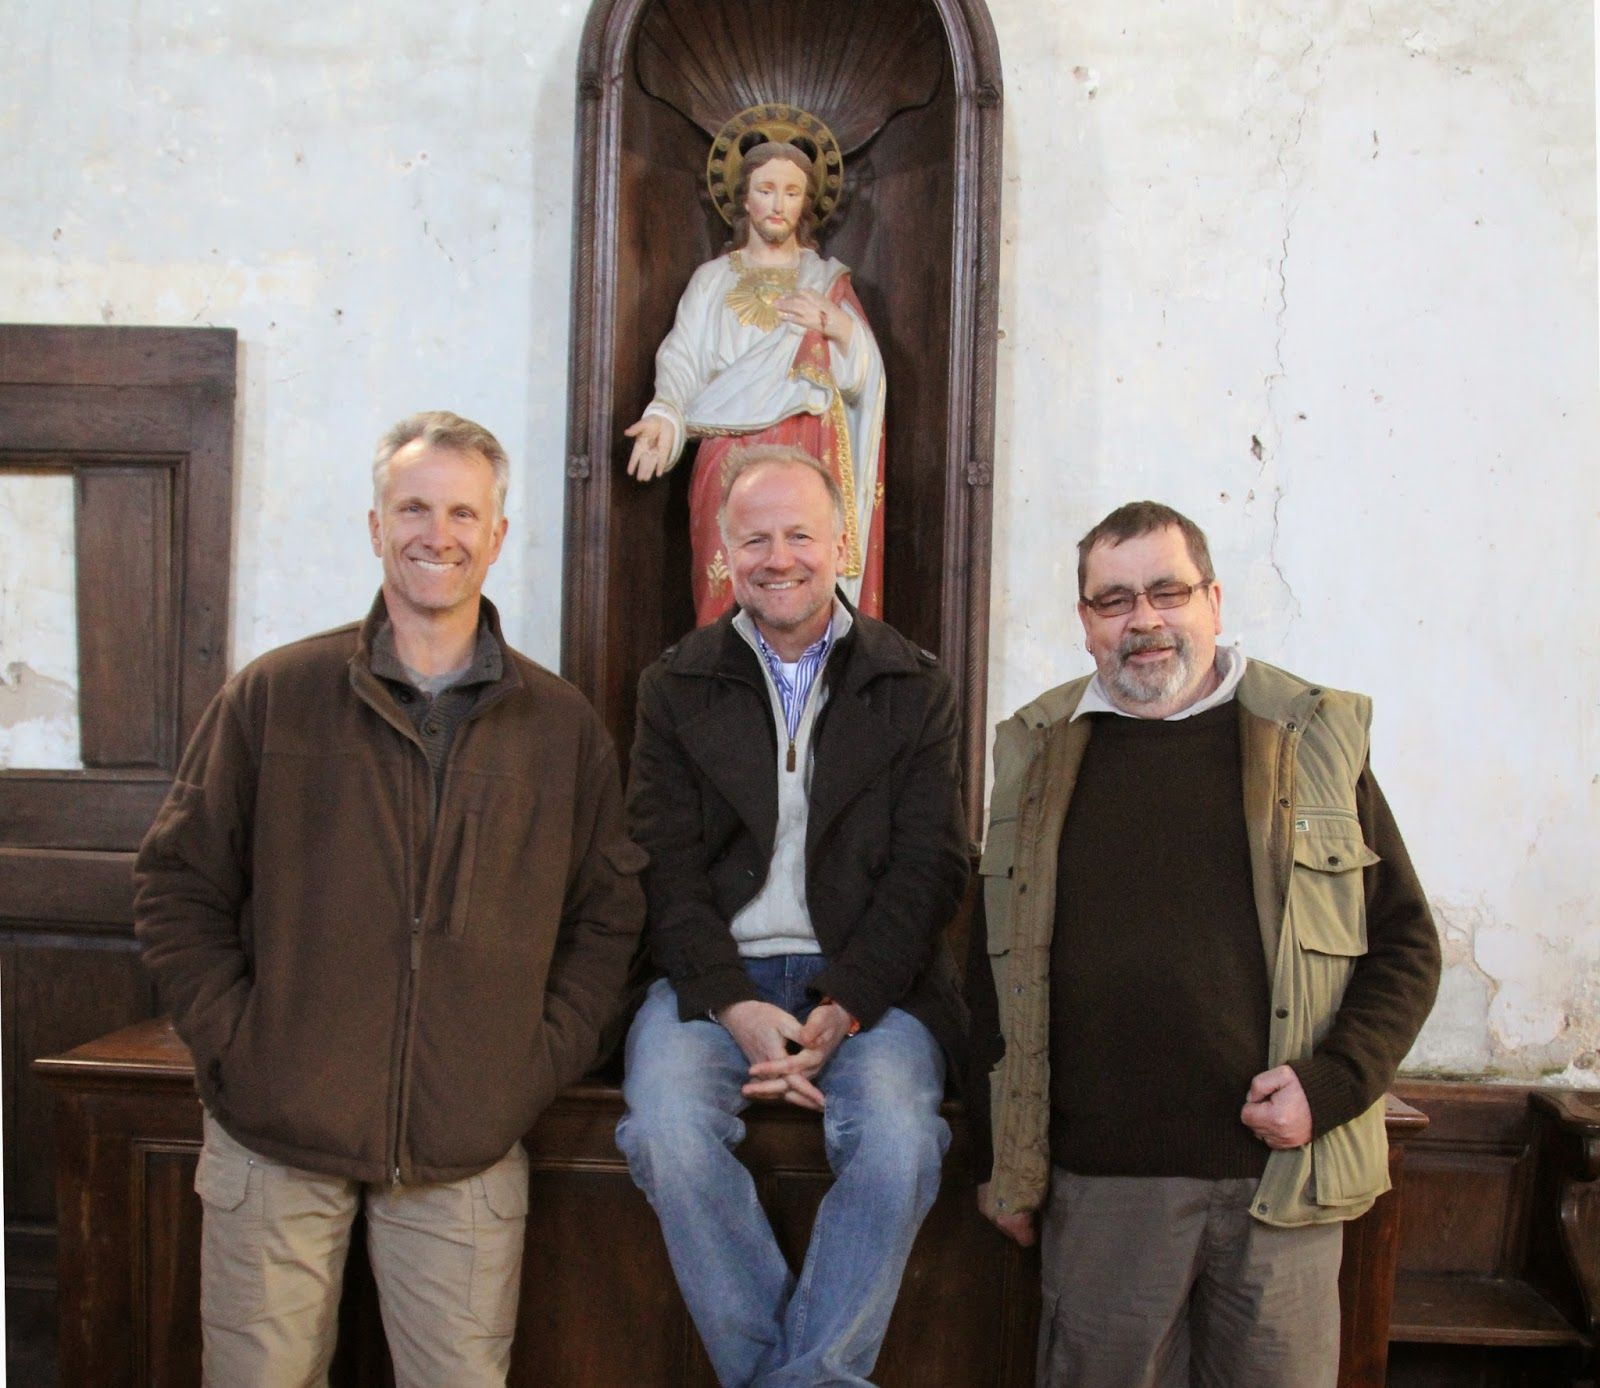 scott wolter answers venus families founded the cistercians and